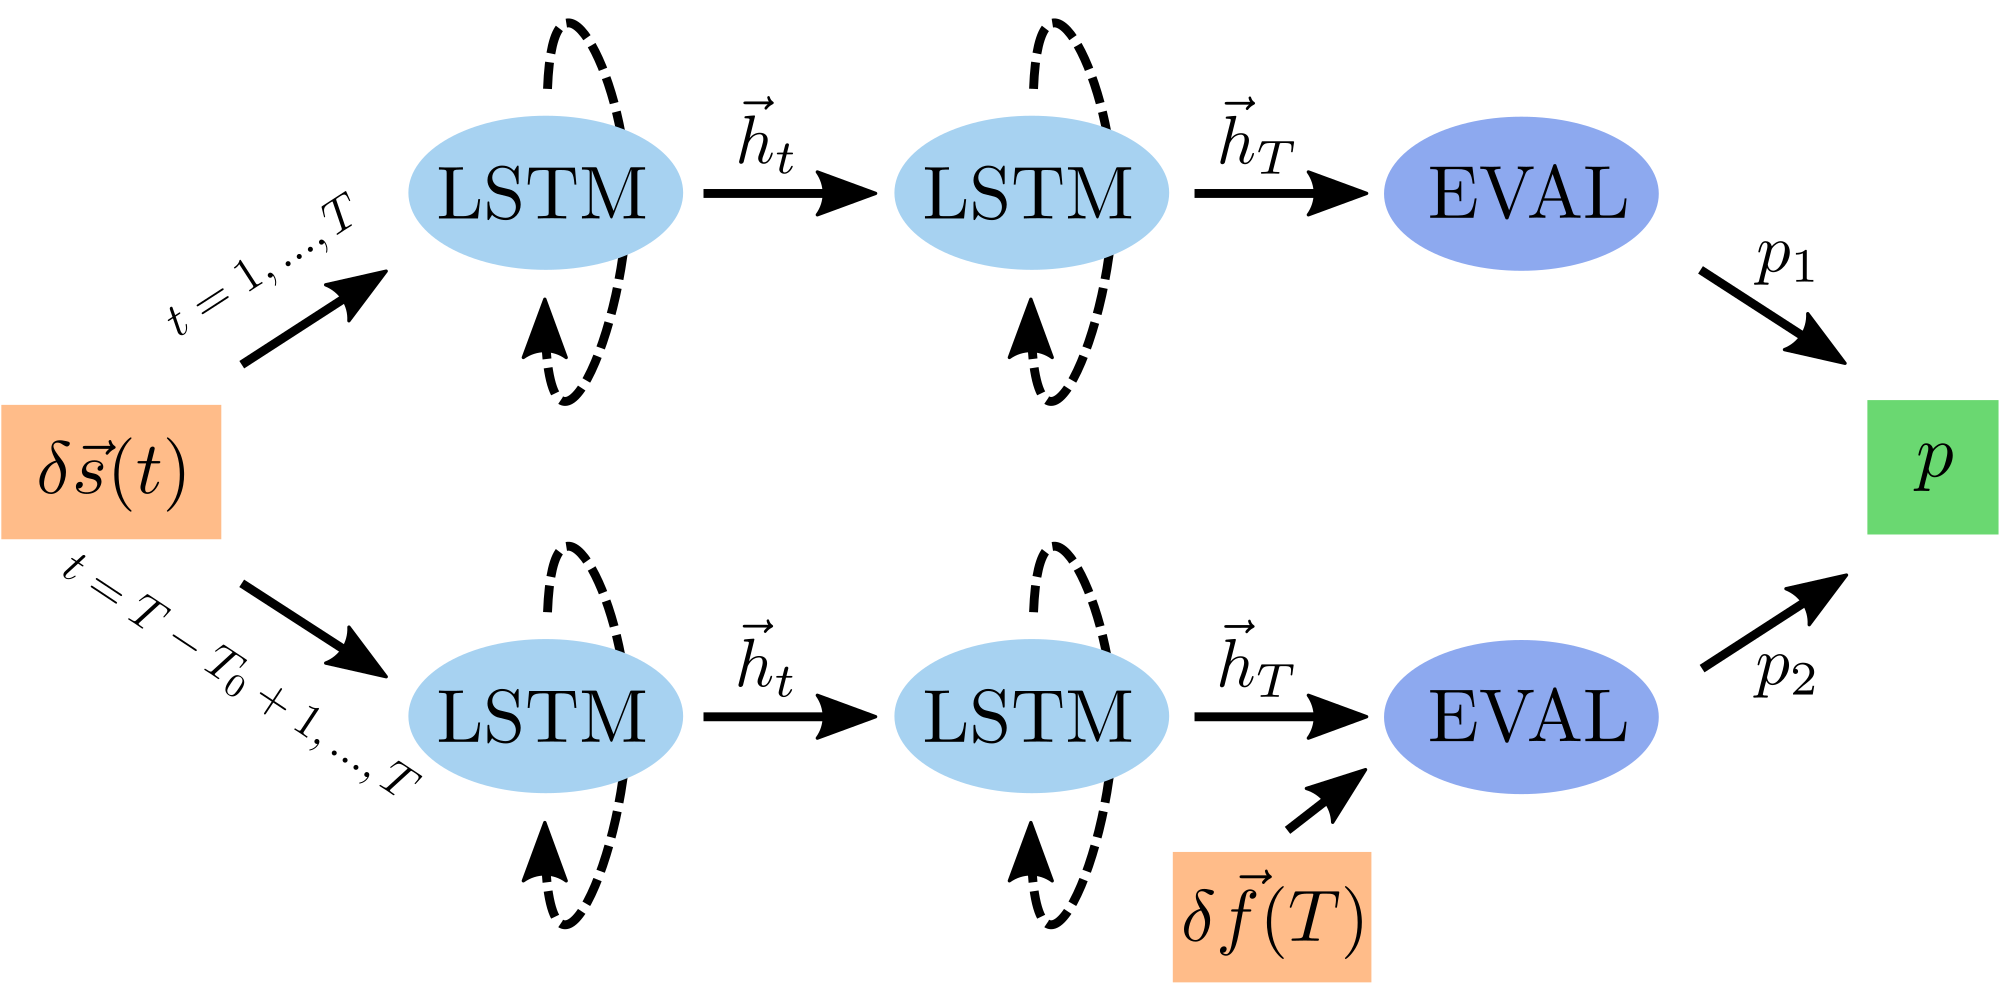 Machine-learning-assisted correction of correlated qubit errors in a